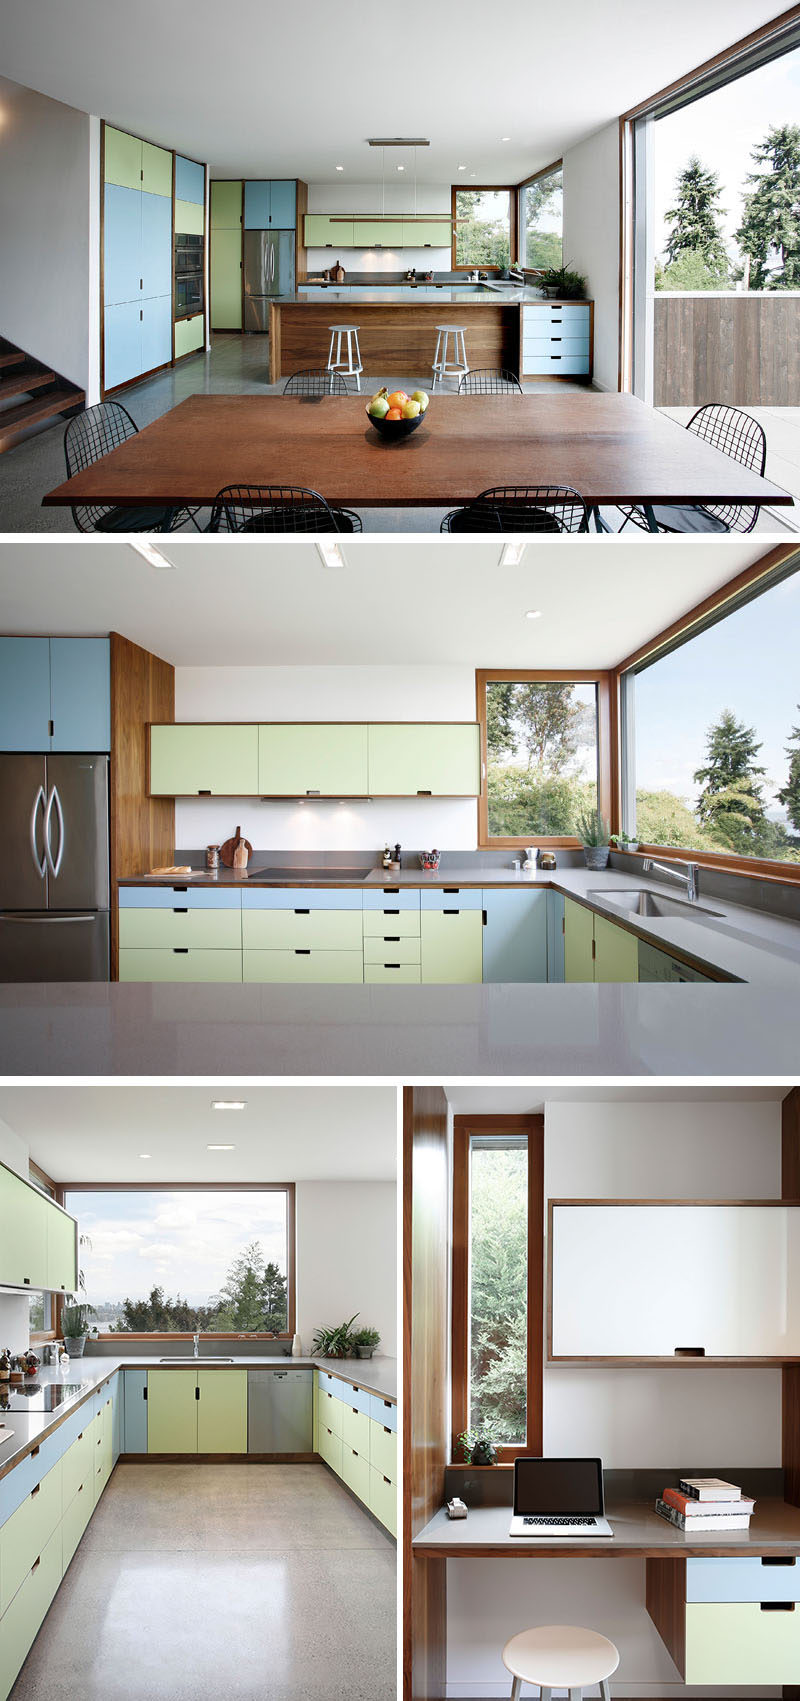 Color has been added to the interior of this modern house, like in the kitchen, where the designers used pastel blue and green cabinet fronts that compliment the wood cabinetry and window frames. #ColorfulKitchen #KitchenDesign